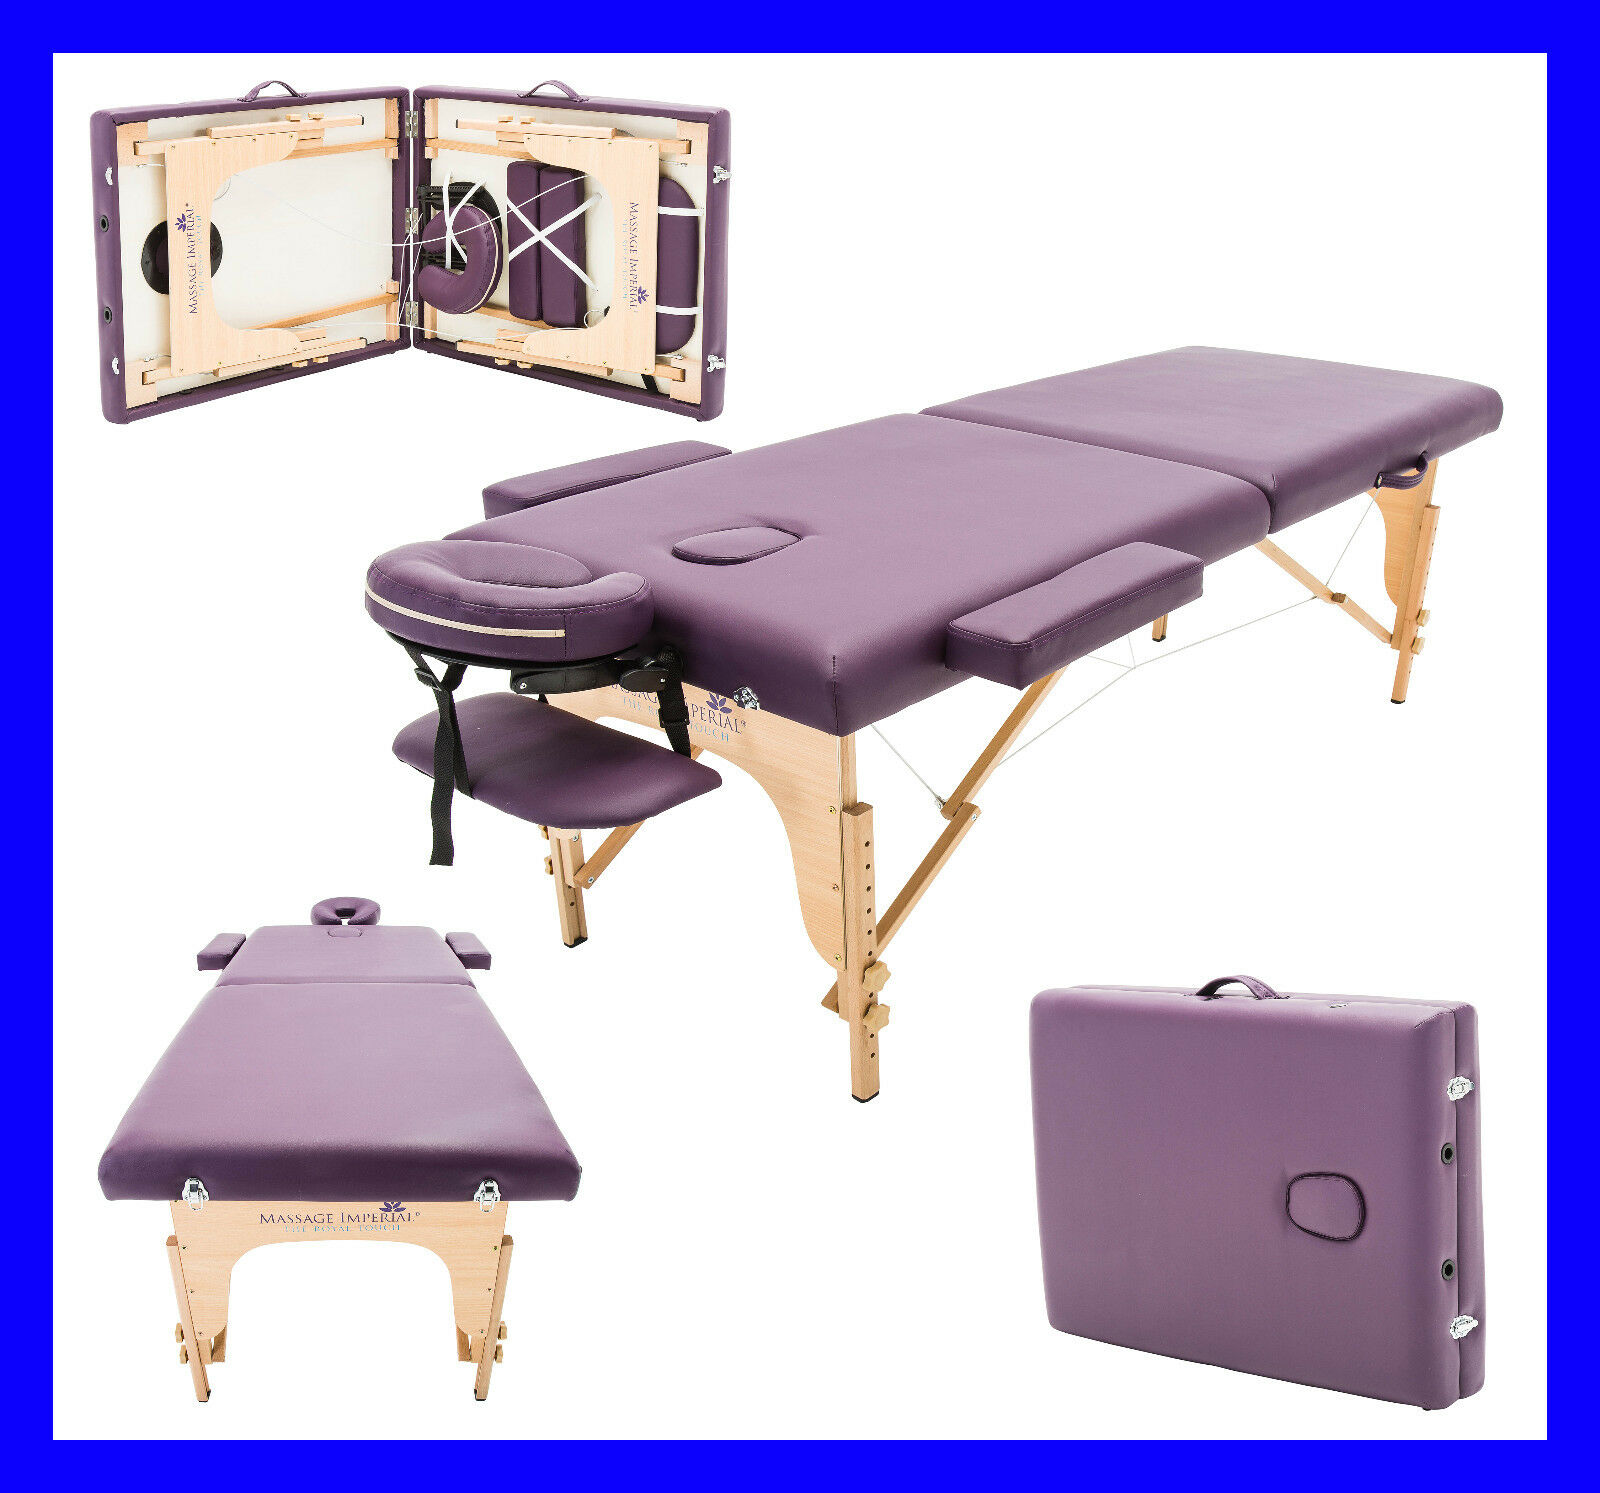 MASSAGE IMPERIAL® PURPLE CHARBURY PORTABLE MASSAGE TABLE COUCH BEAUTY BED REIKI